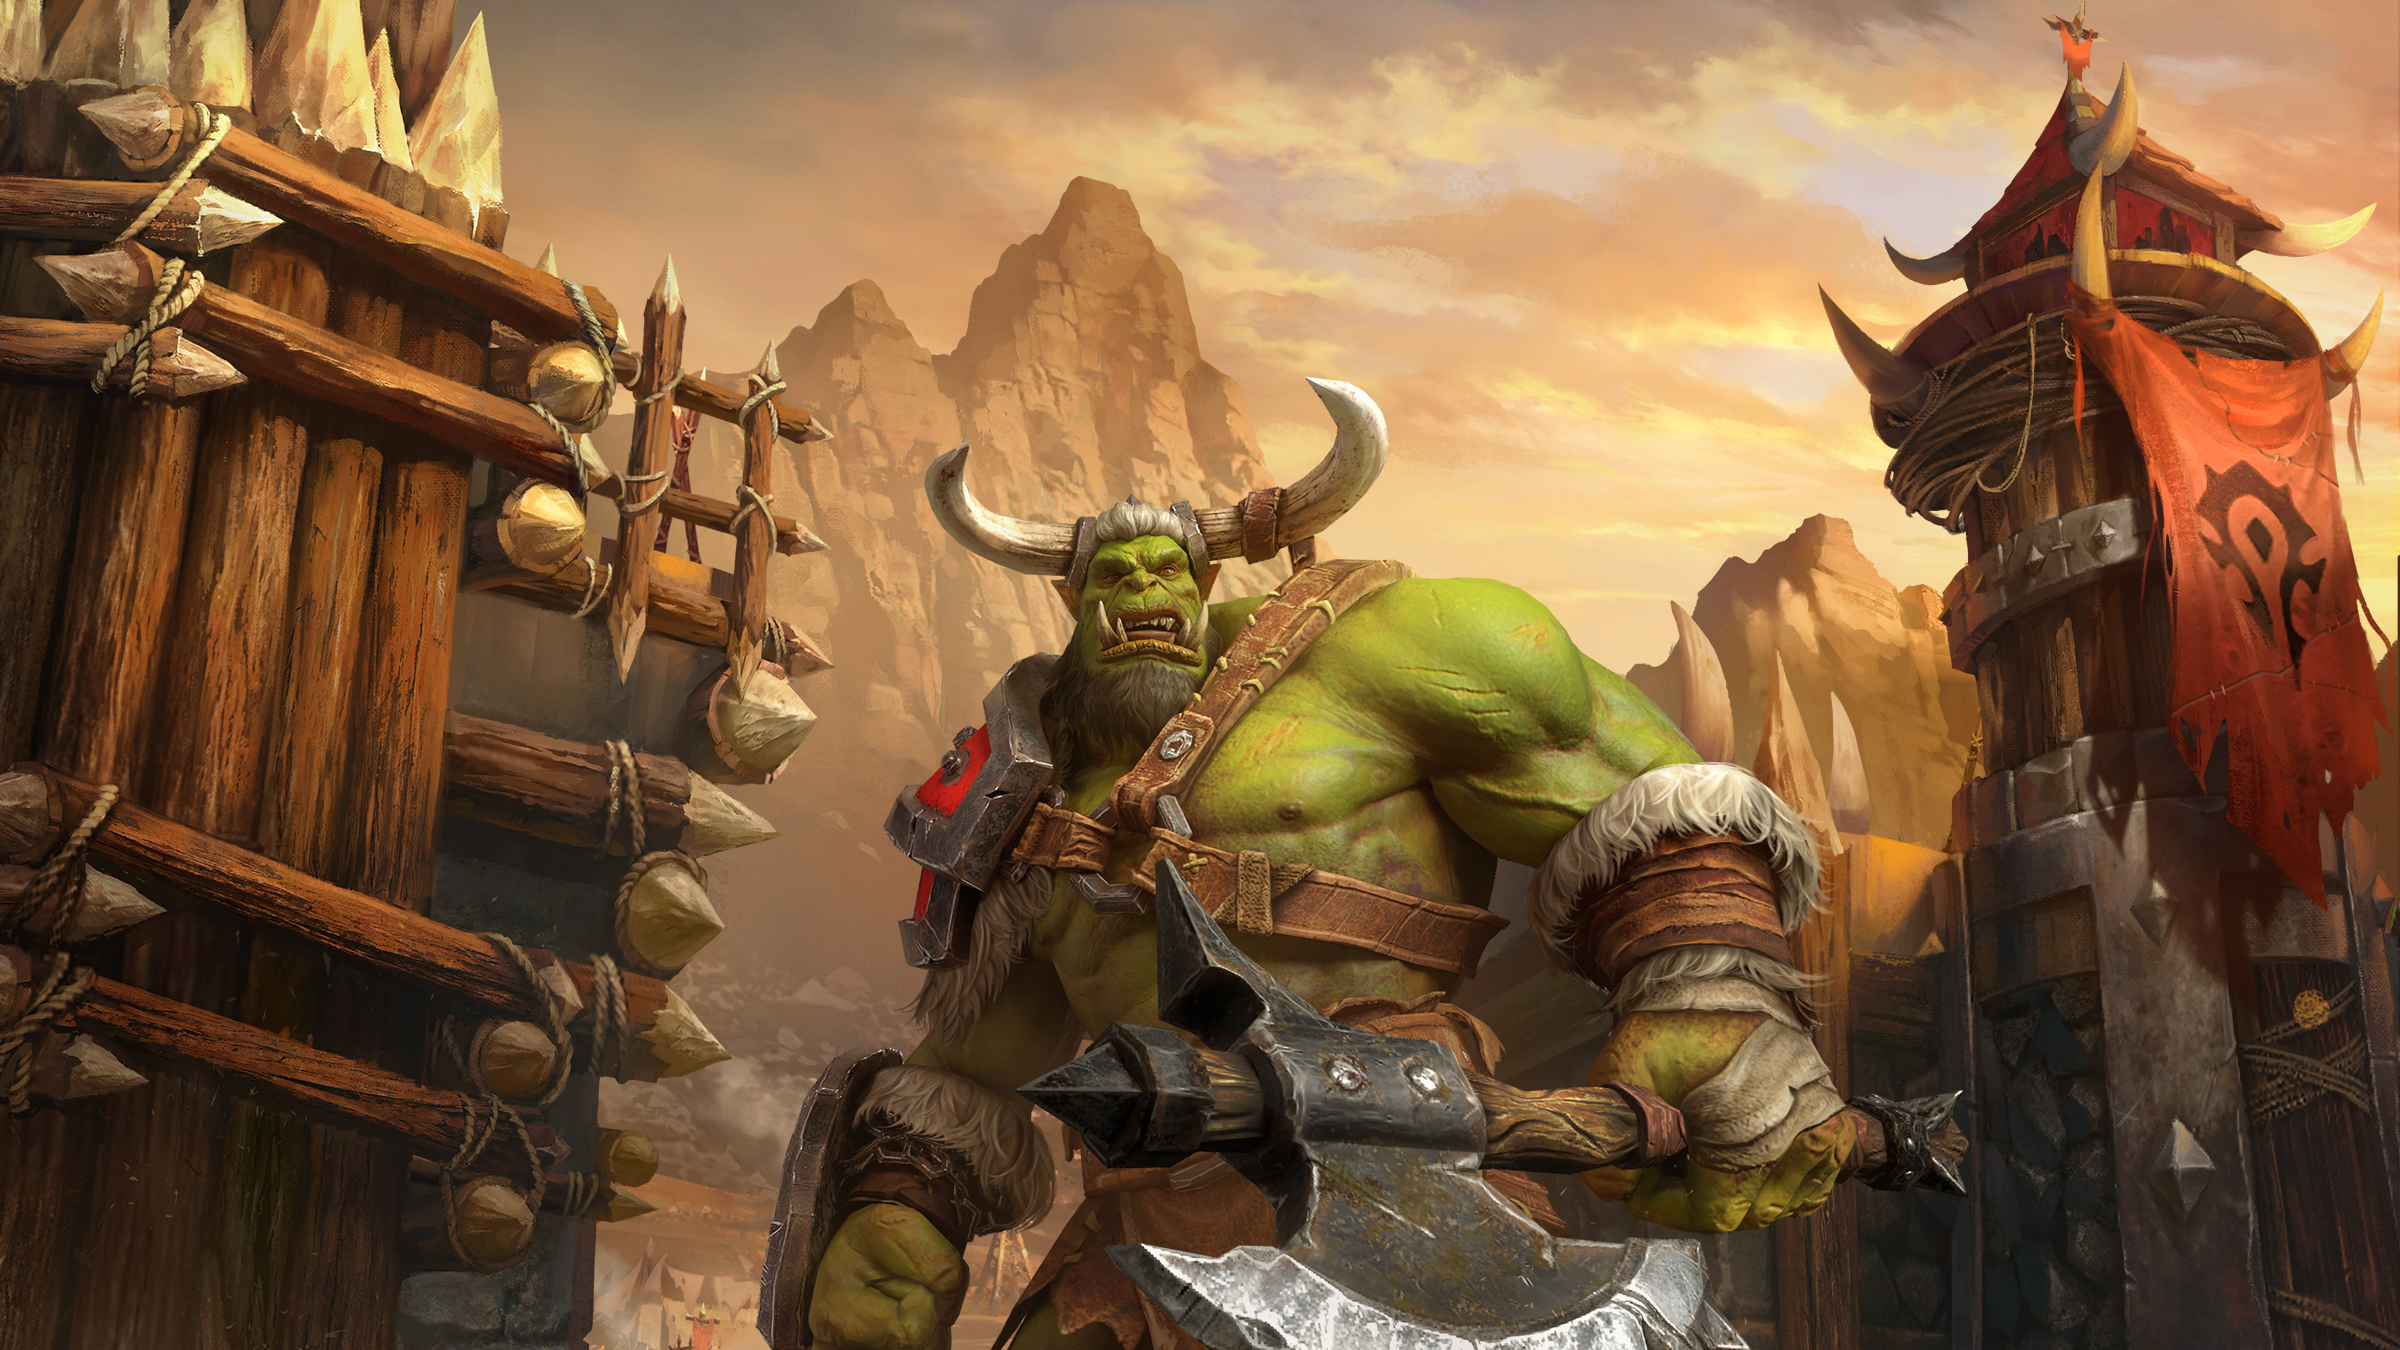 An orc from Warcraft 3 Reforged